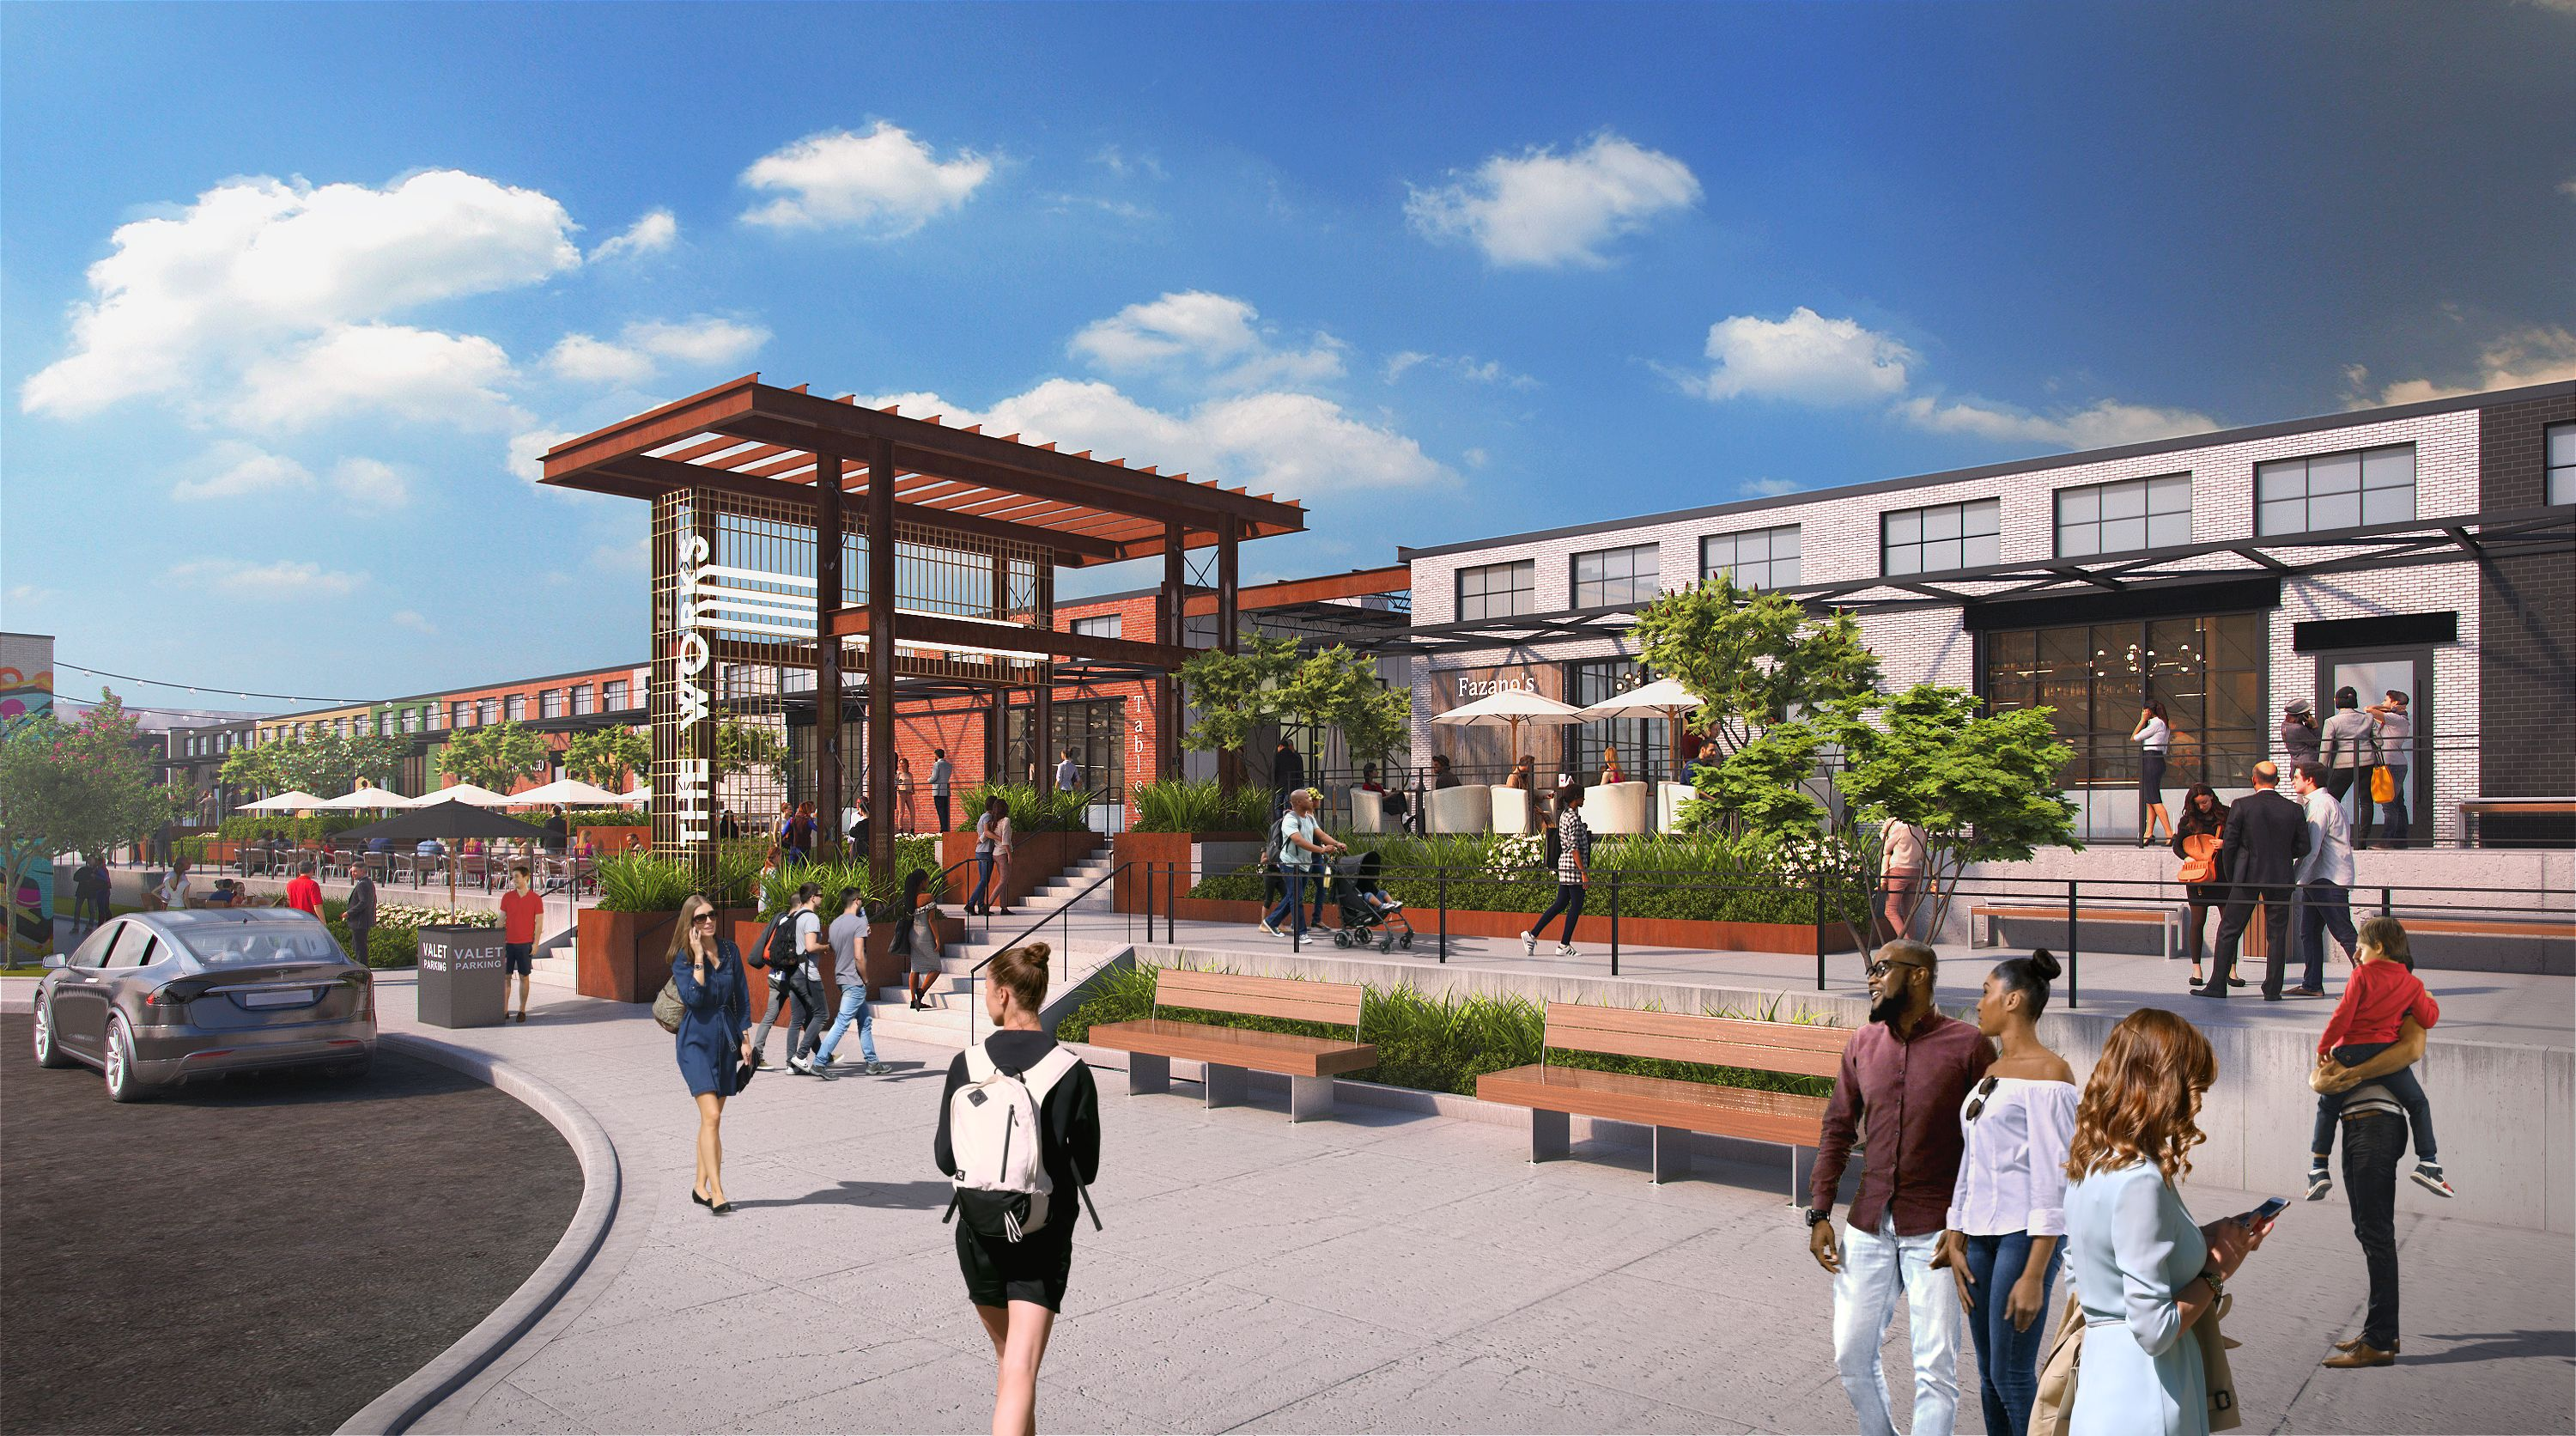 A rendering shows a pedestrian plaza in front of an aging building that's been rehabbed for retail.